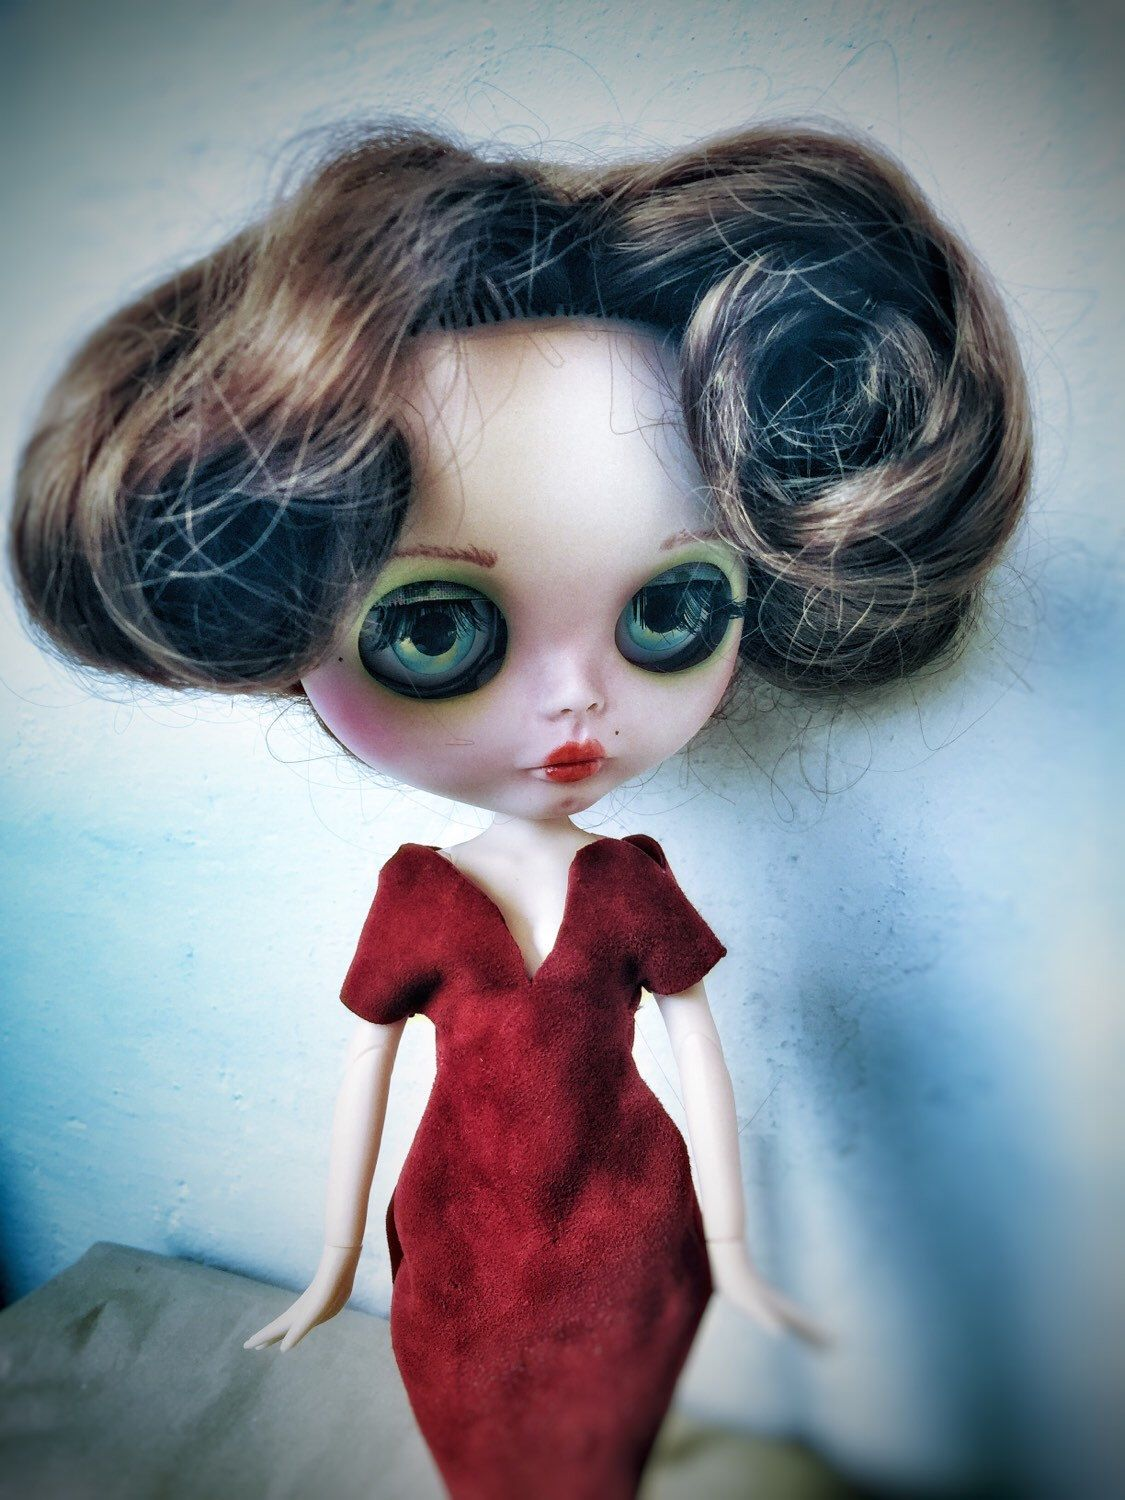 Un preferito personale dal mio negozio Etsy https://www.etsy.com/it/listing/230827032/blythe-doll-ooak-fashion-doll-bambola